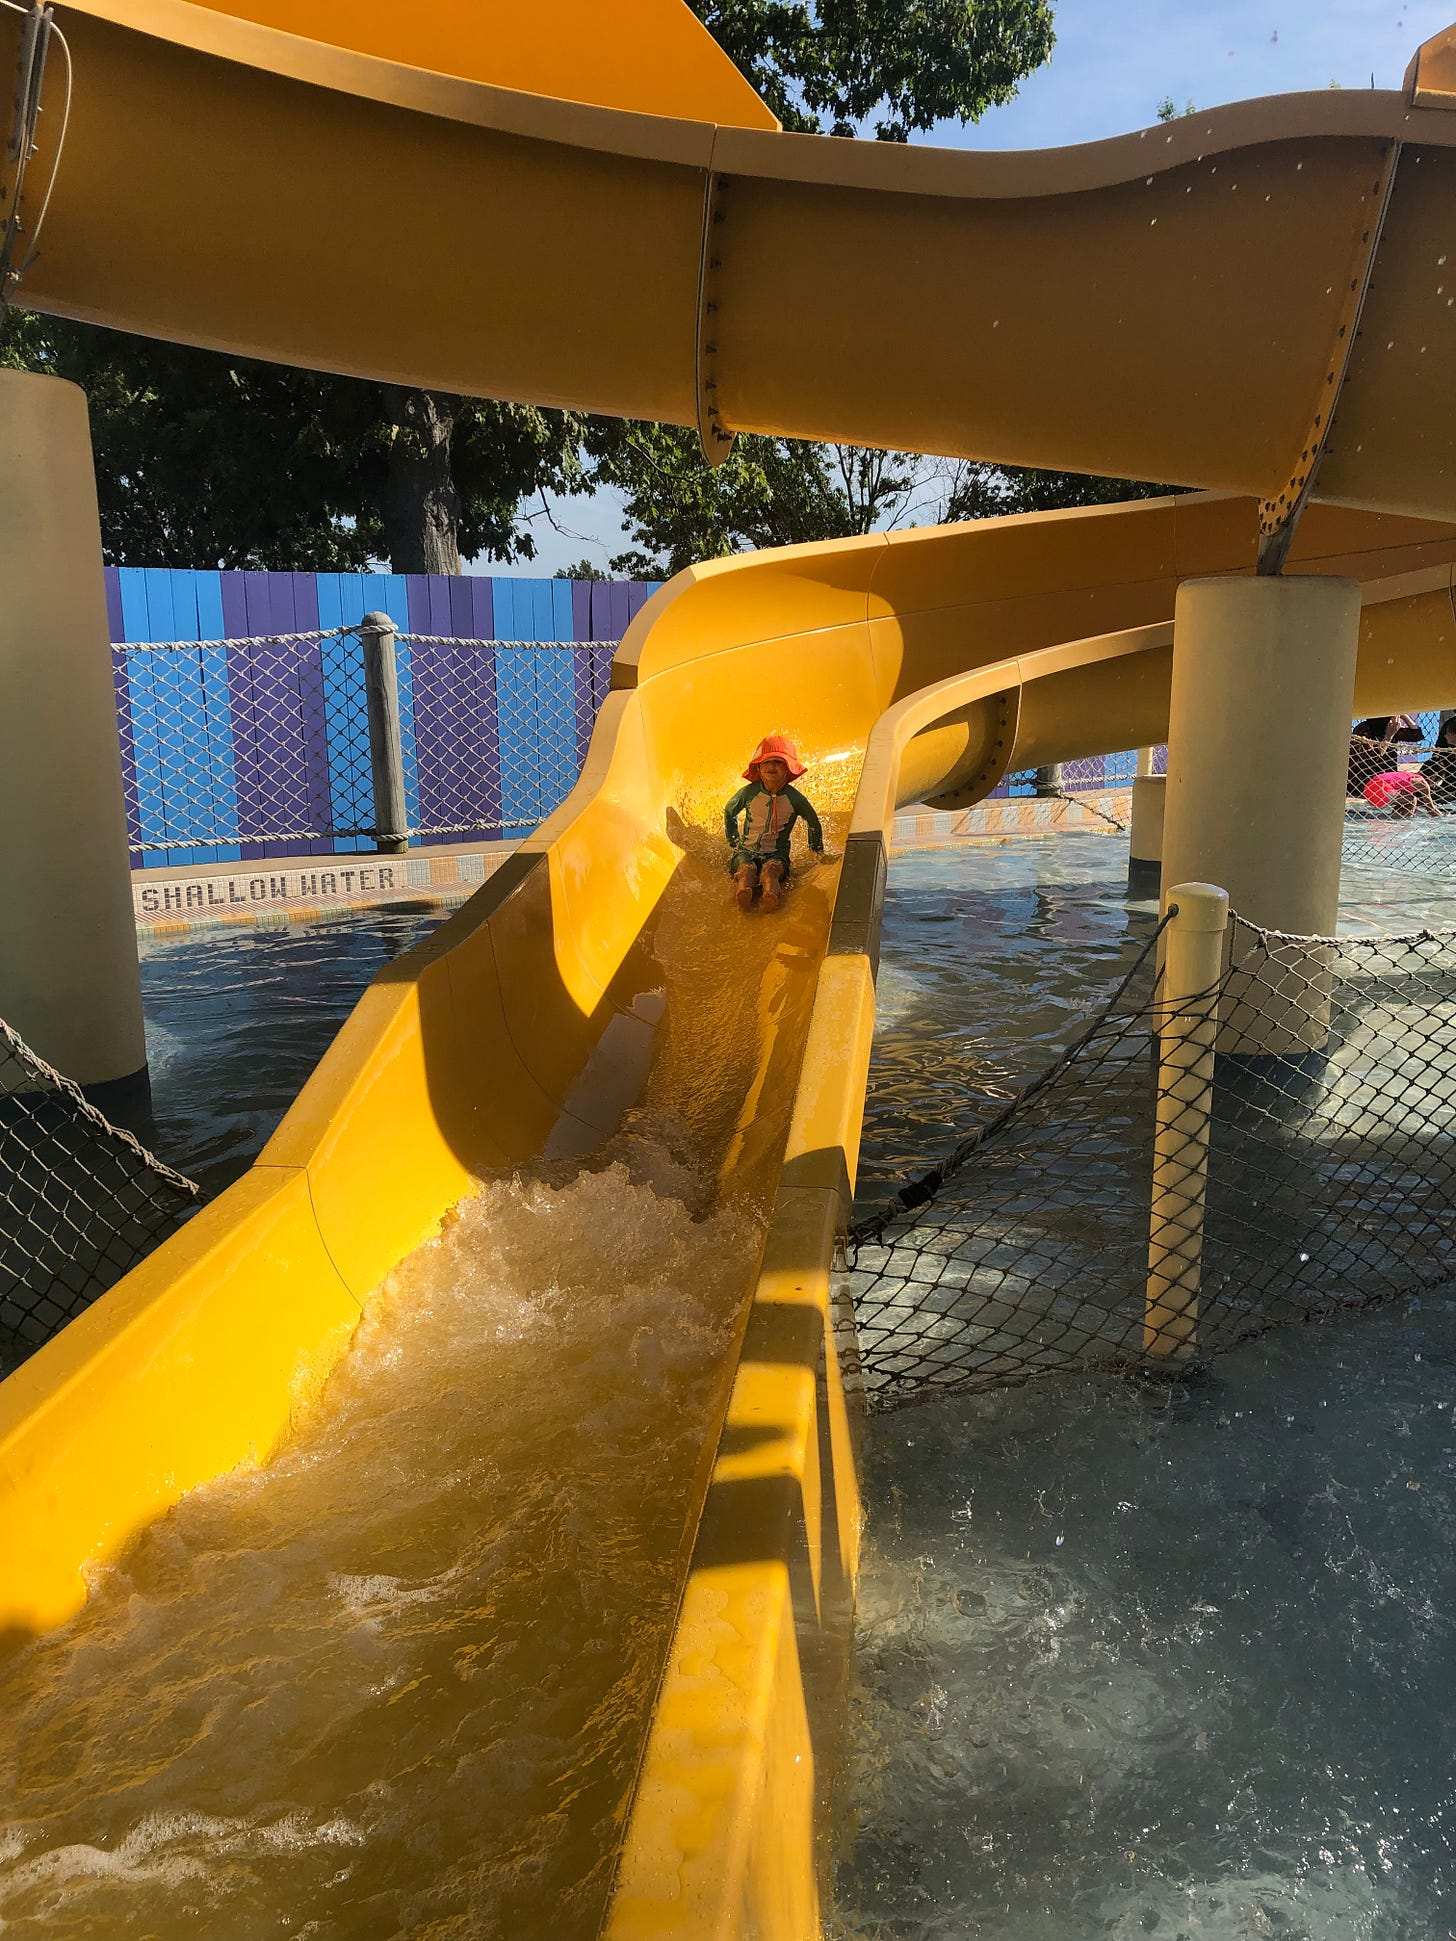 Photo shows a 4 year old in an orange hat on a winding yellow water slide.